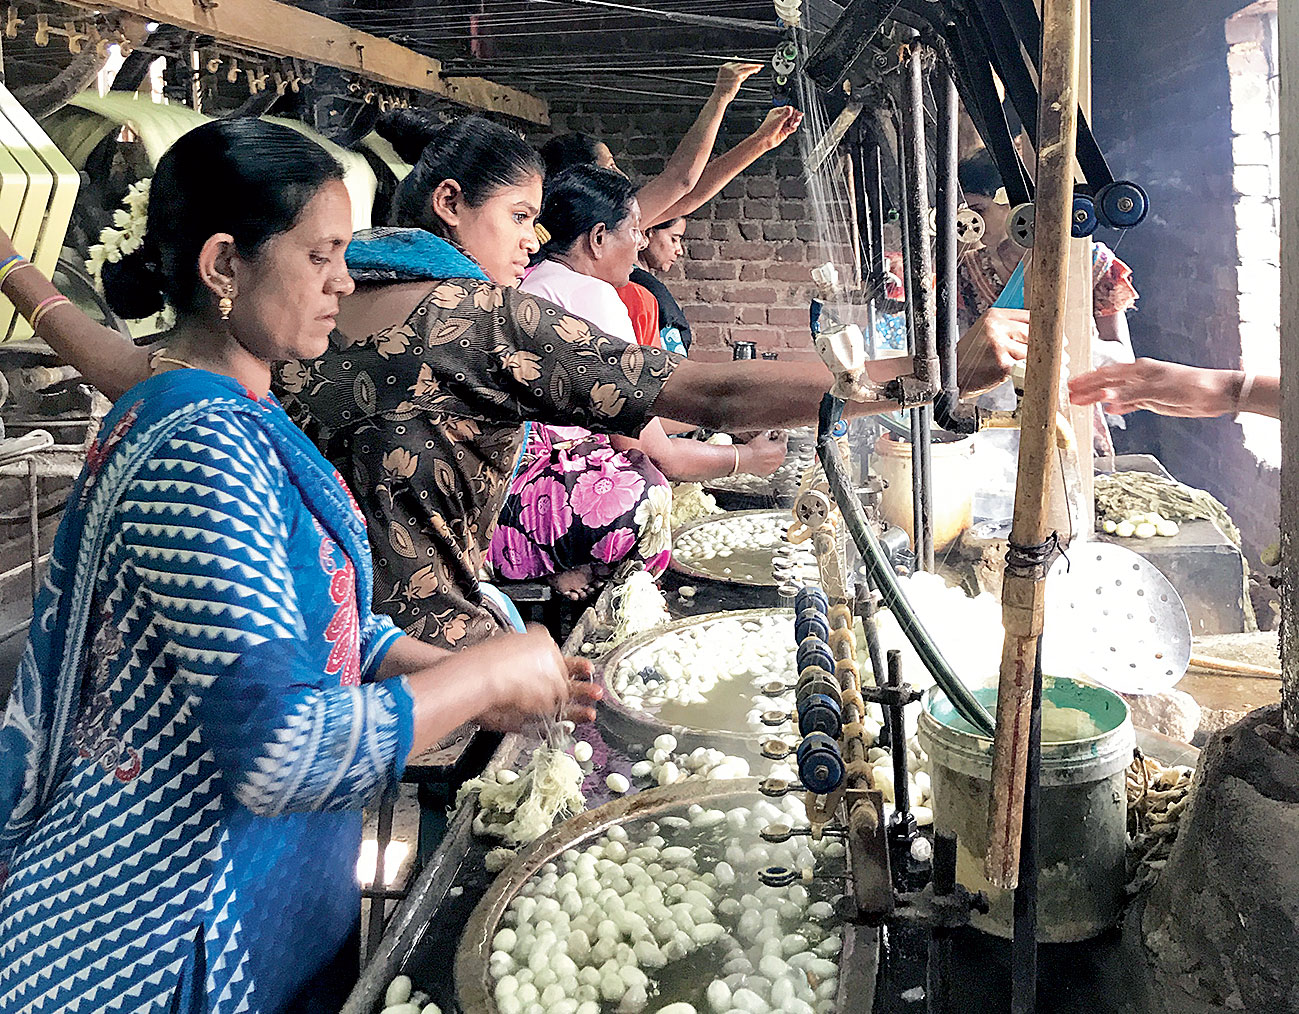 The family-run sericulture unit is mostly run by women with the matriarch giving way to her daughter-in-law Akhlima (left) in this fourth-generation family business